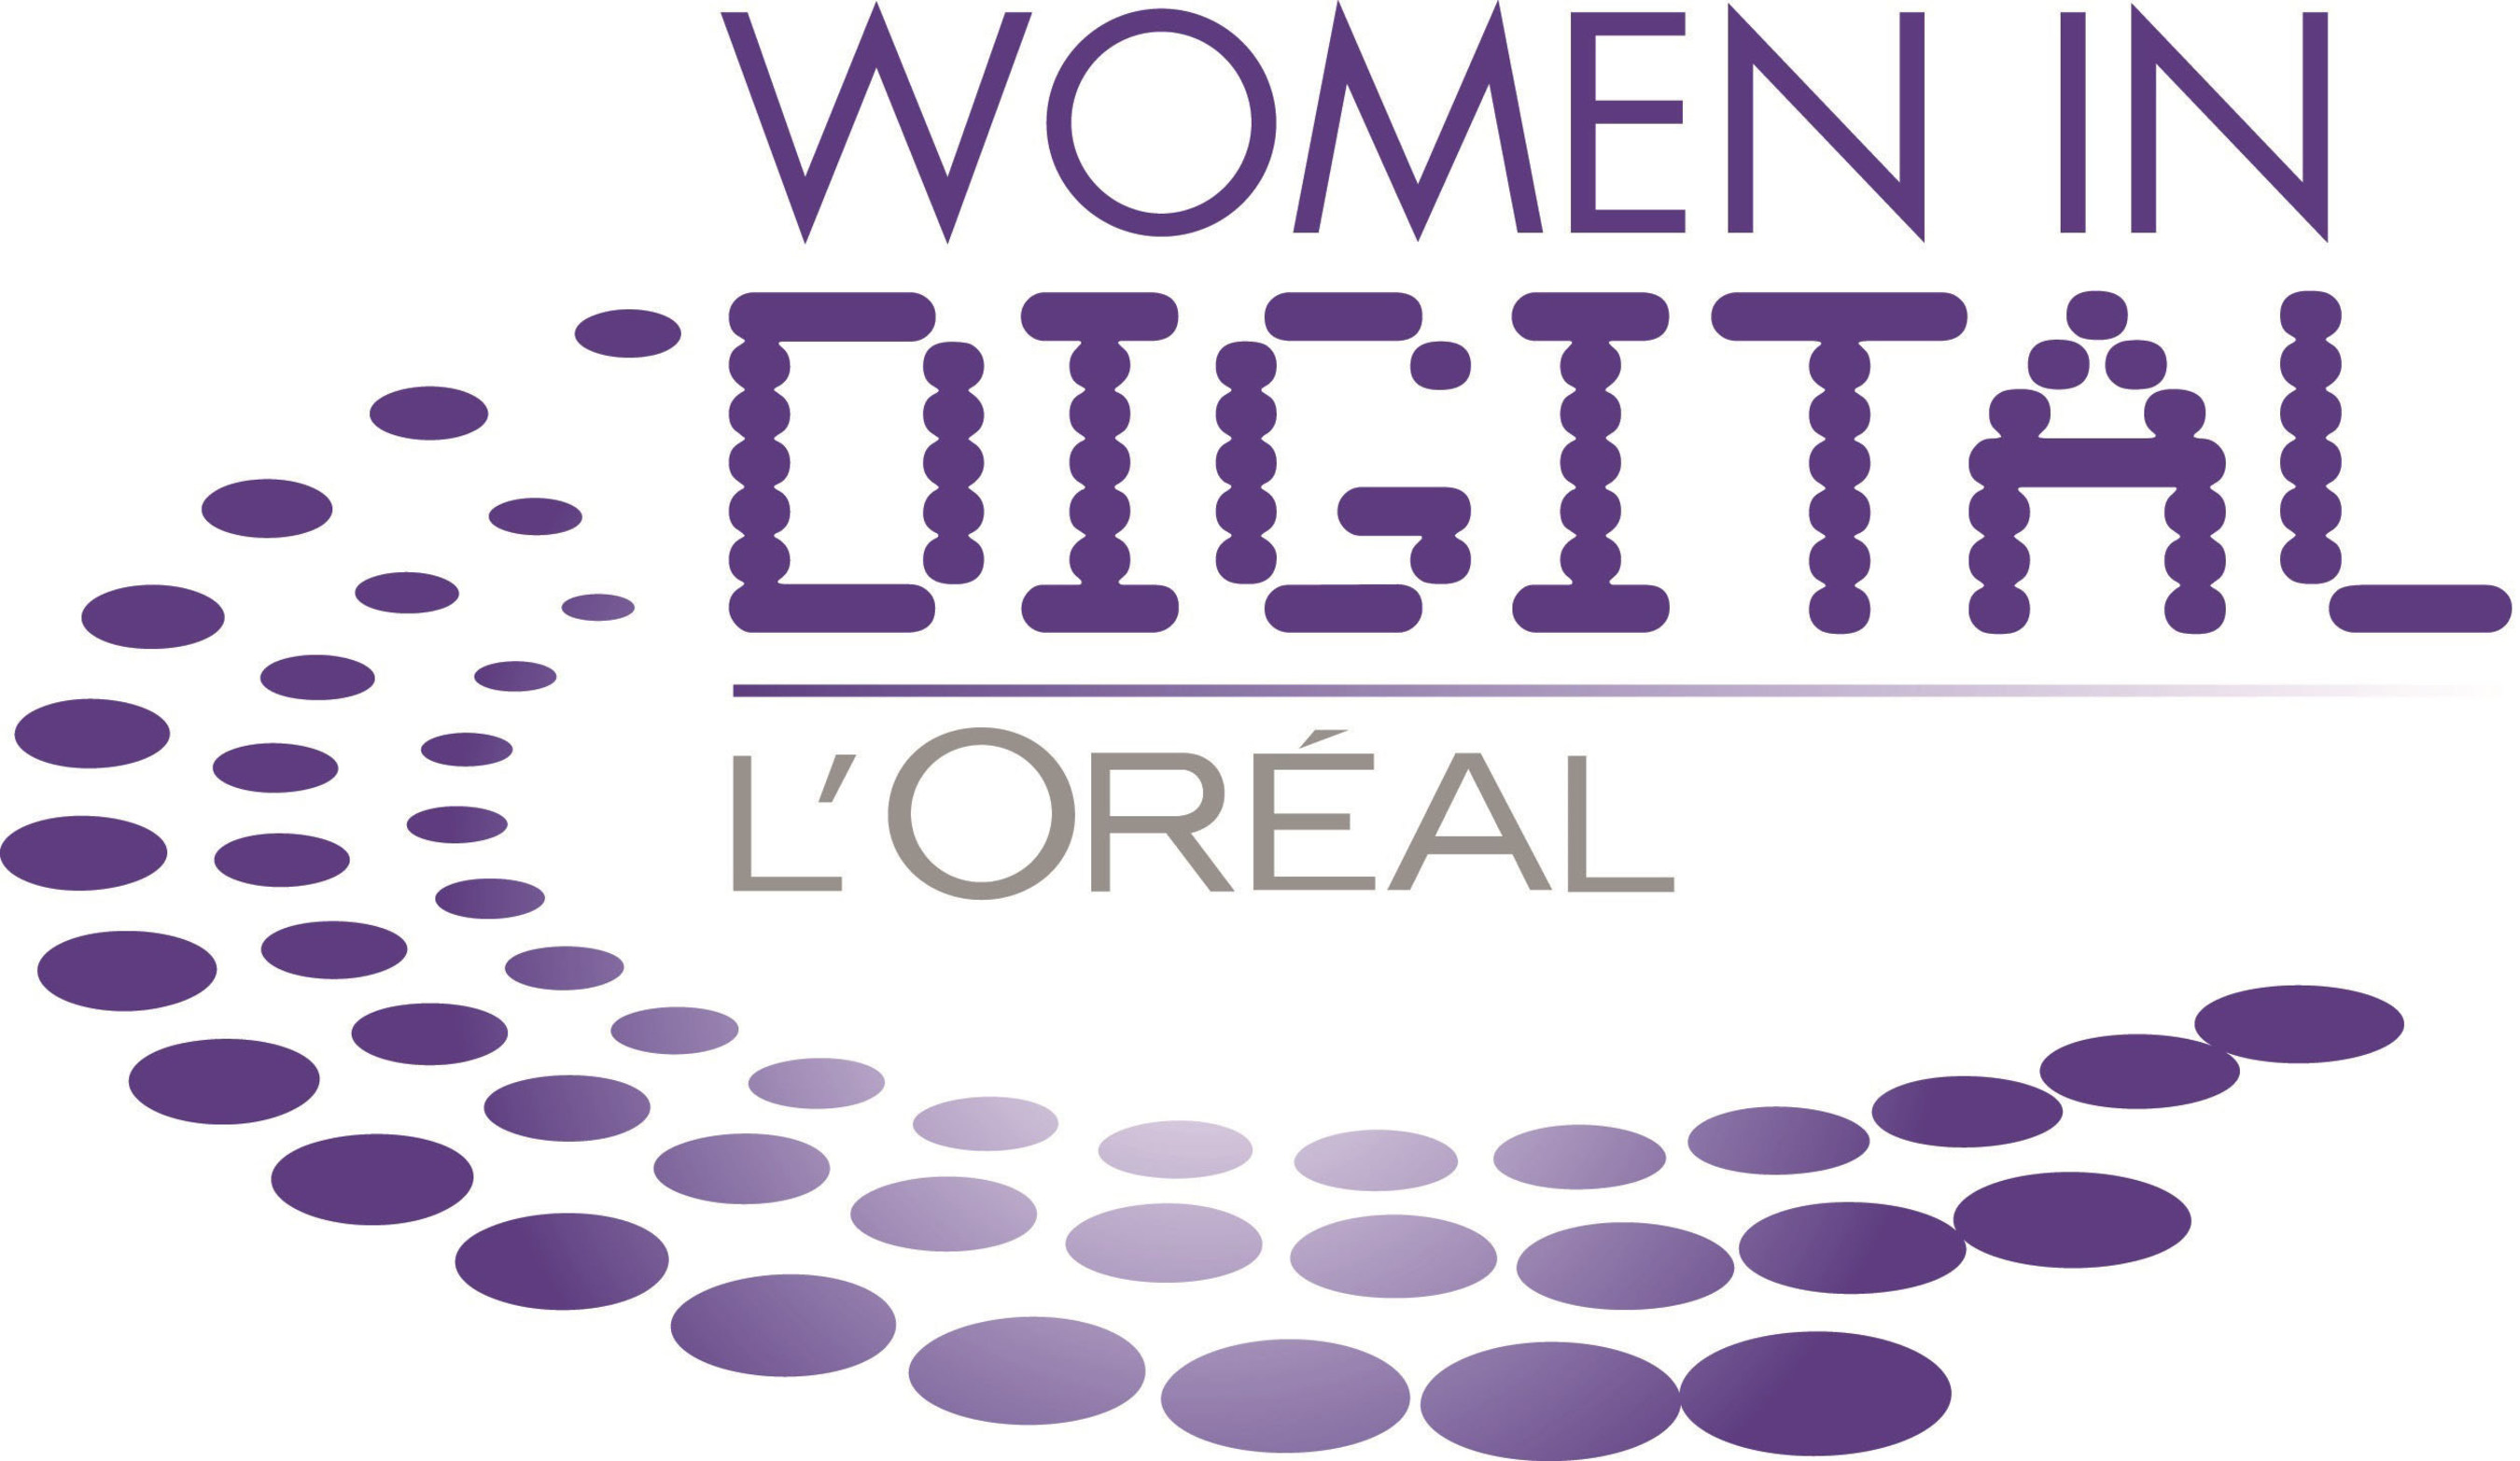 L'Or'al USA Announces The Fifth Annual NEXT Generation Award Finalists For The Women In Digital Program